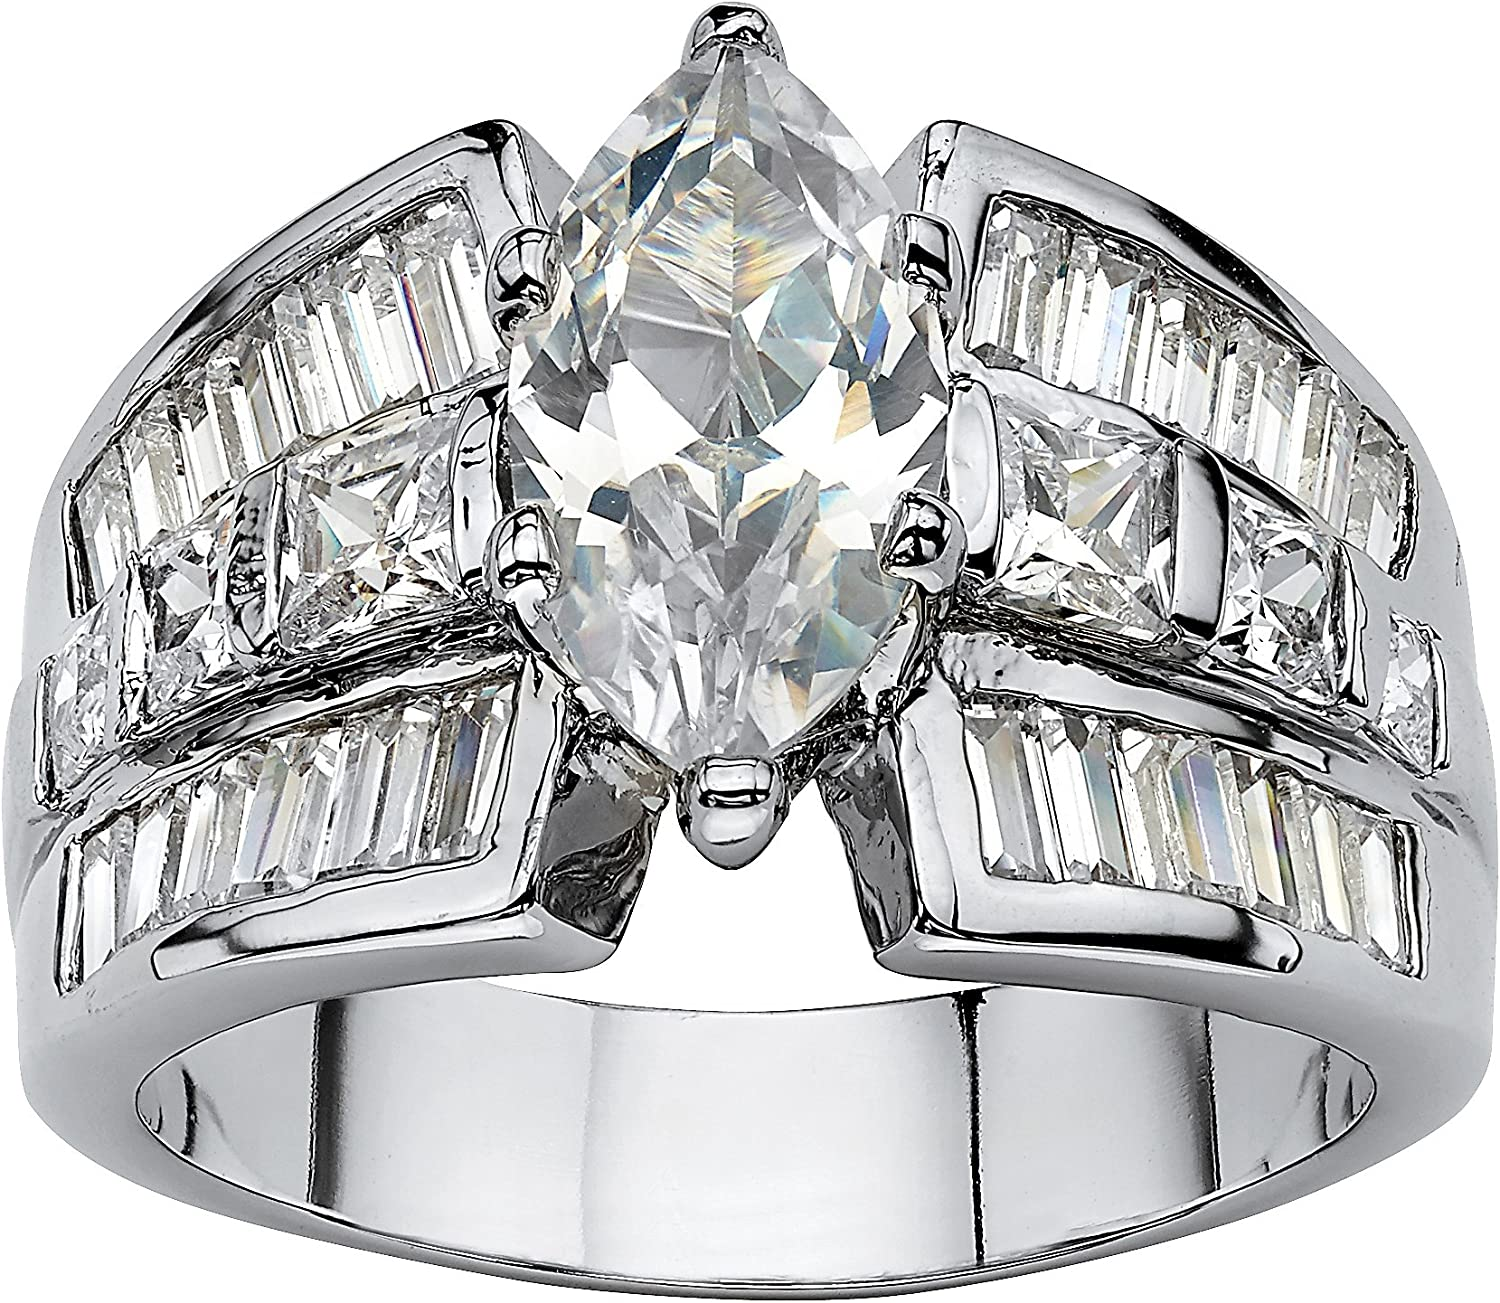 Palm Beach Jewelry 18k Gold-Plated or Platinum-Plated Marquise Cut and Emerald Cut Cubic Zirconia Wide Band Engagement Ring